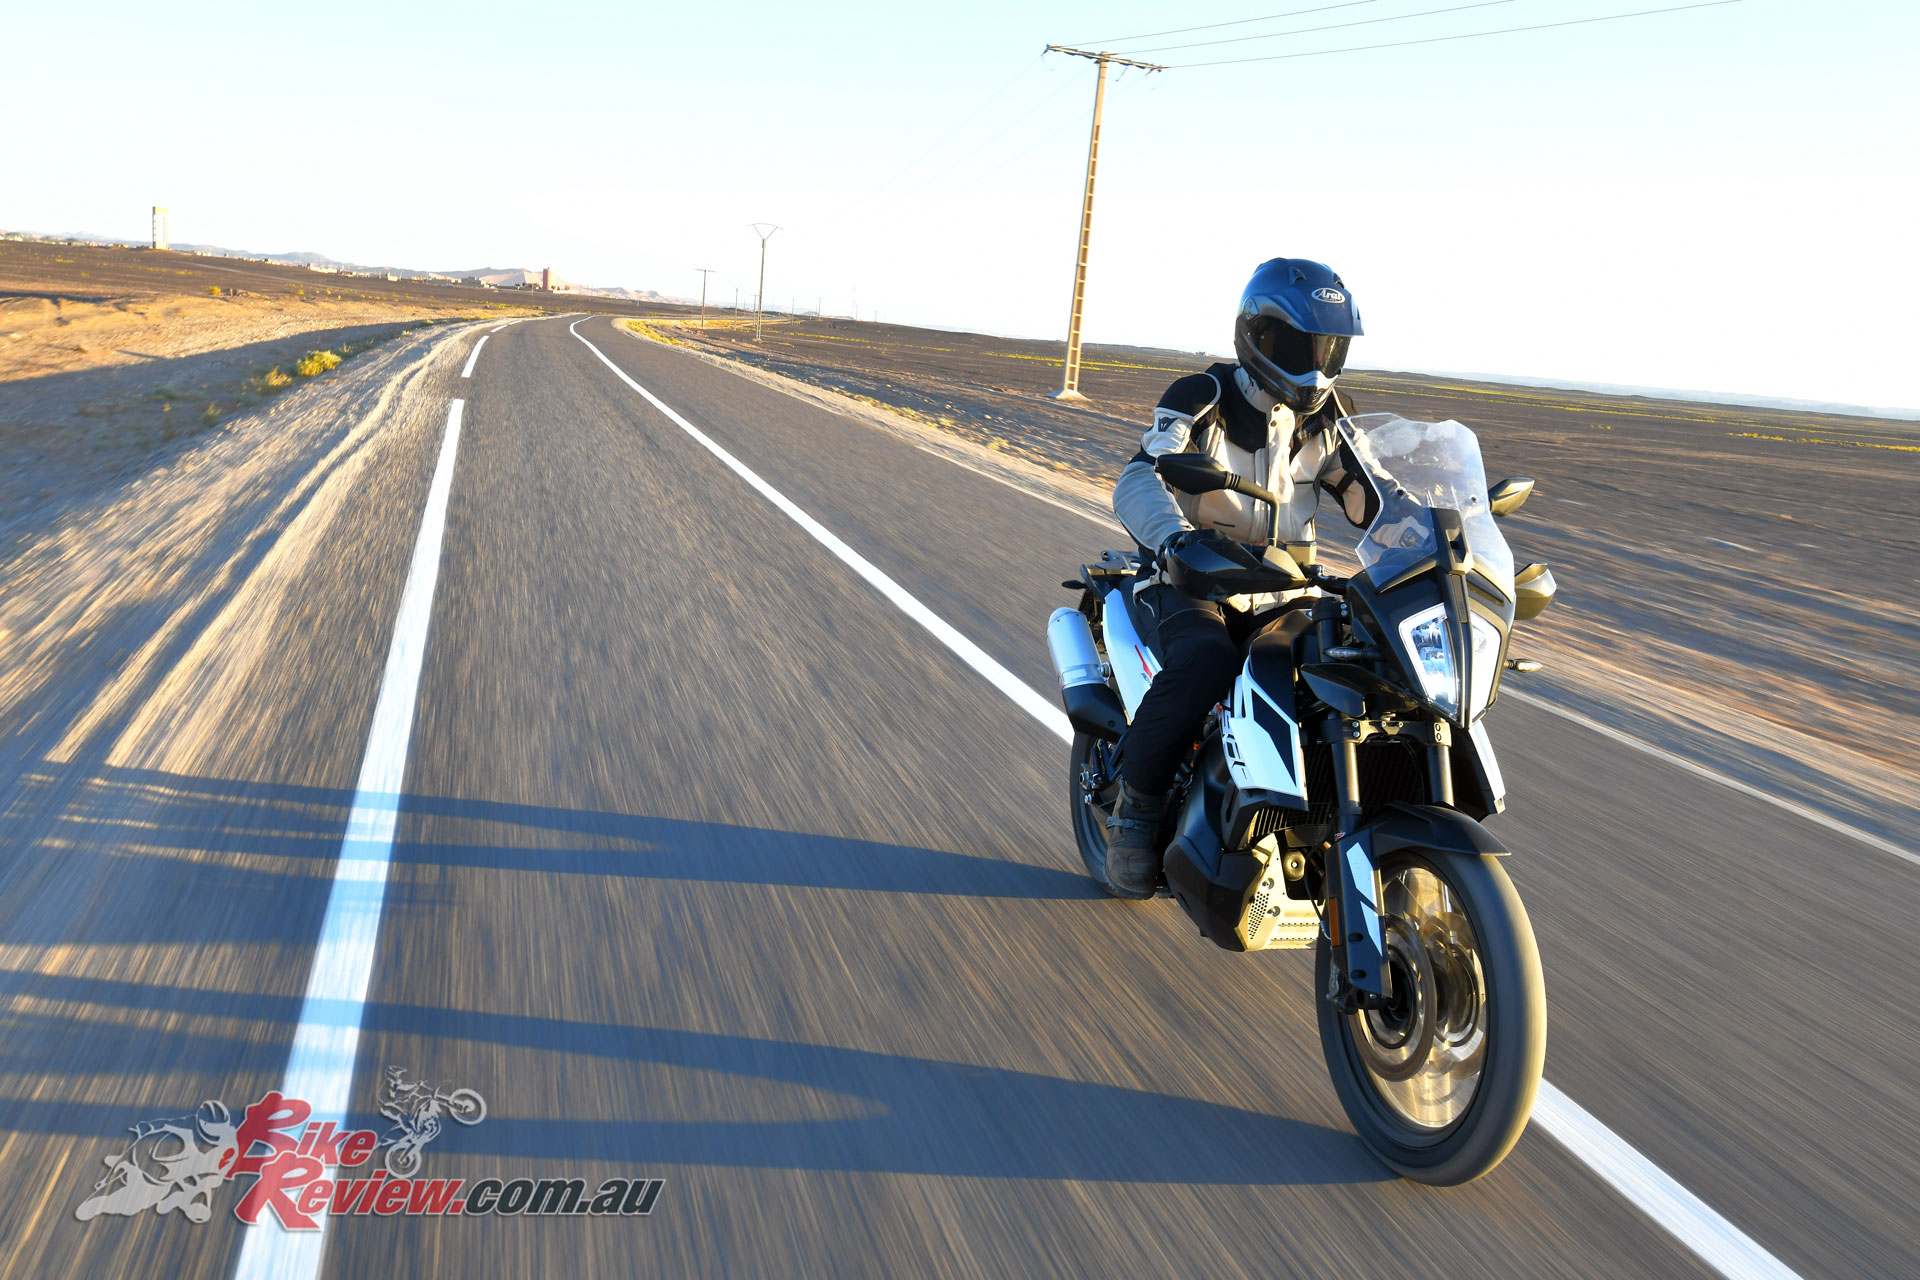 Cruising at 130-140km/h on the open road offers stable and effortless travel on the 790 Adventure